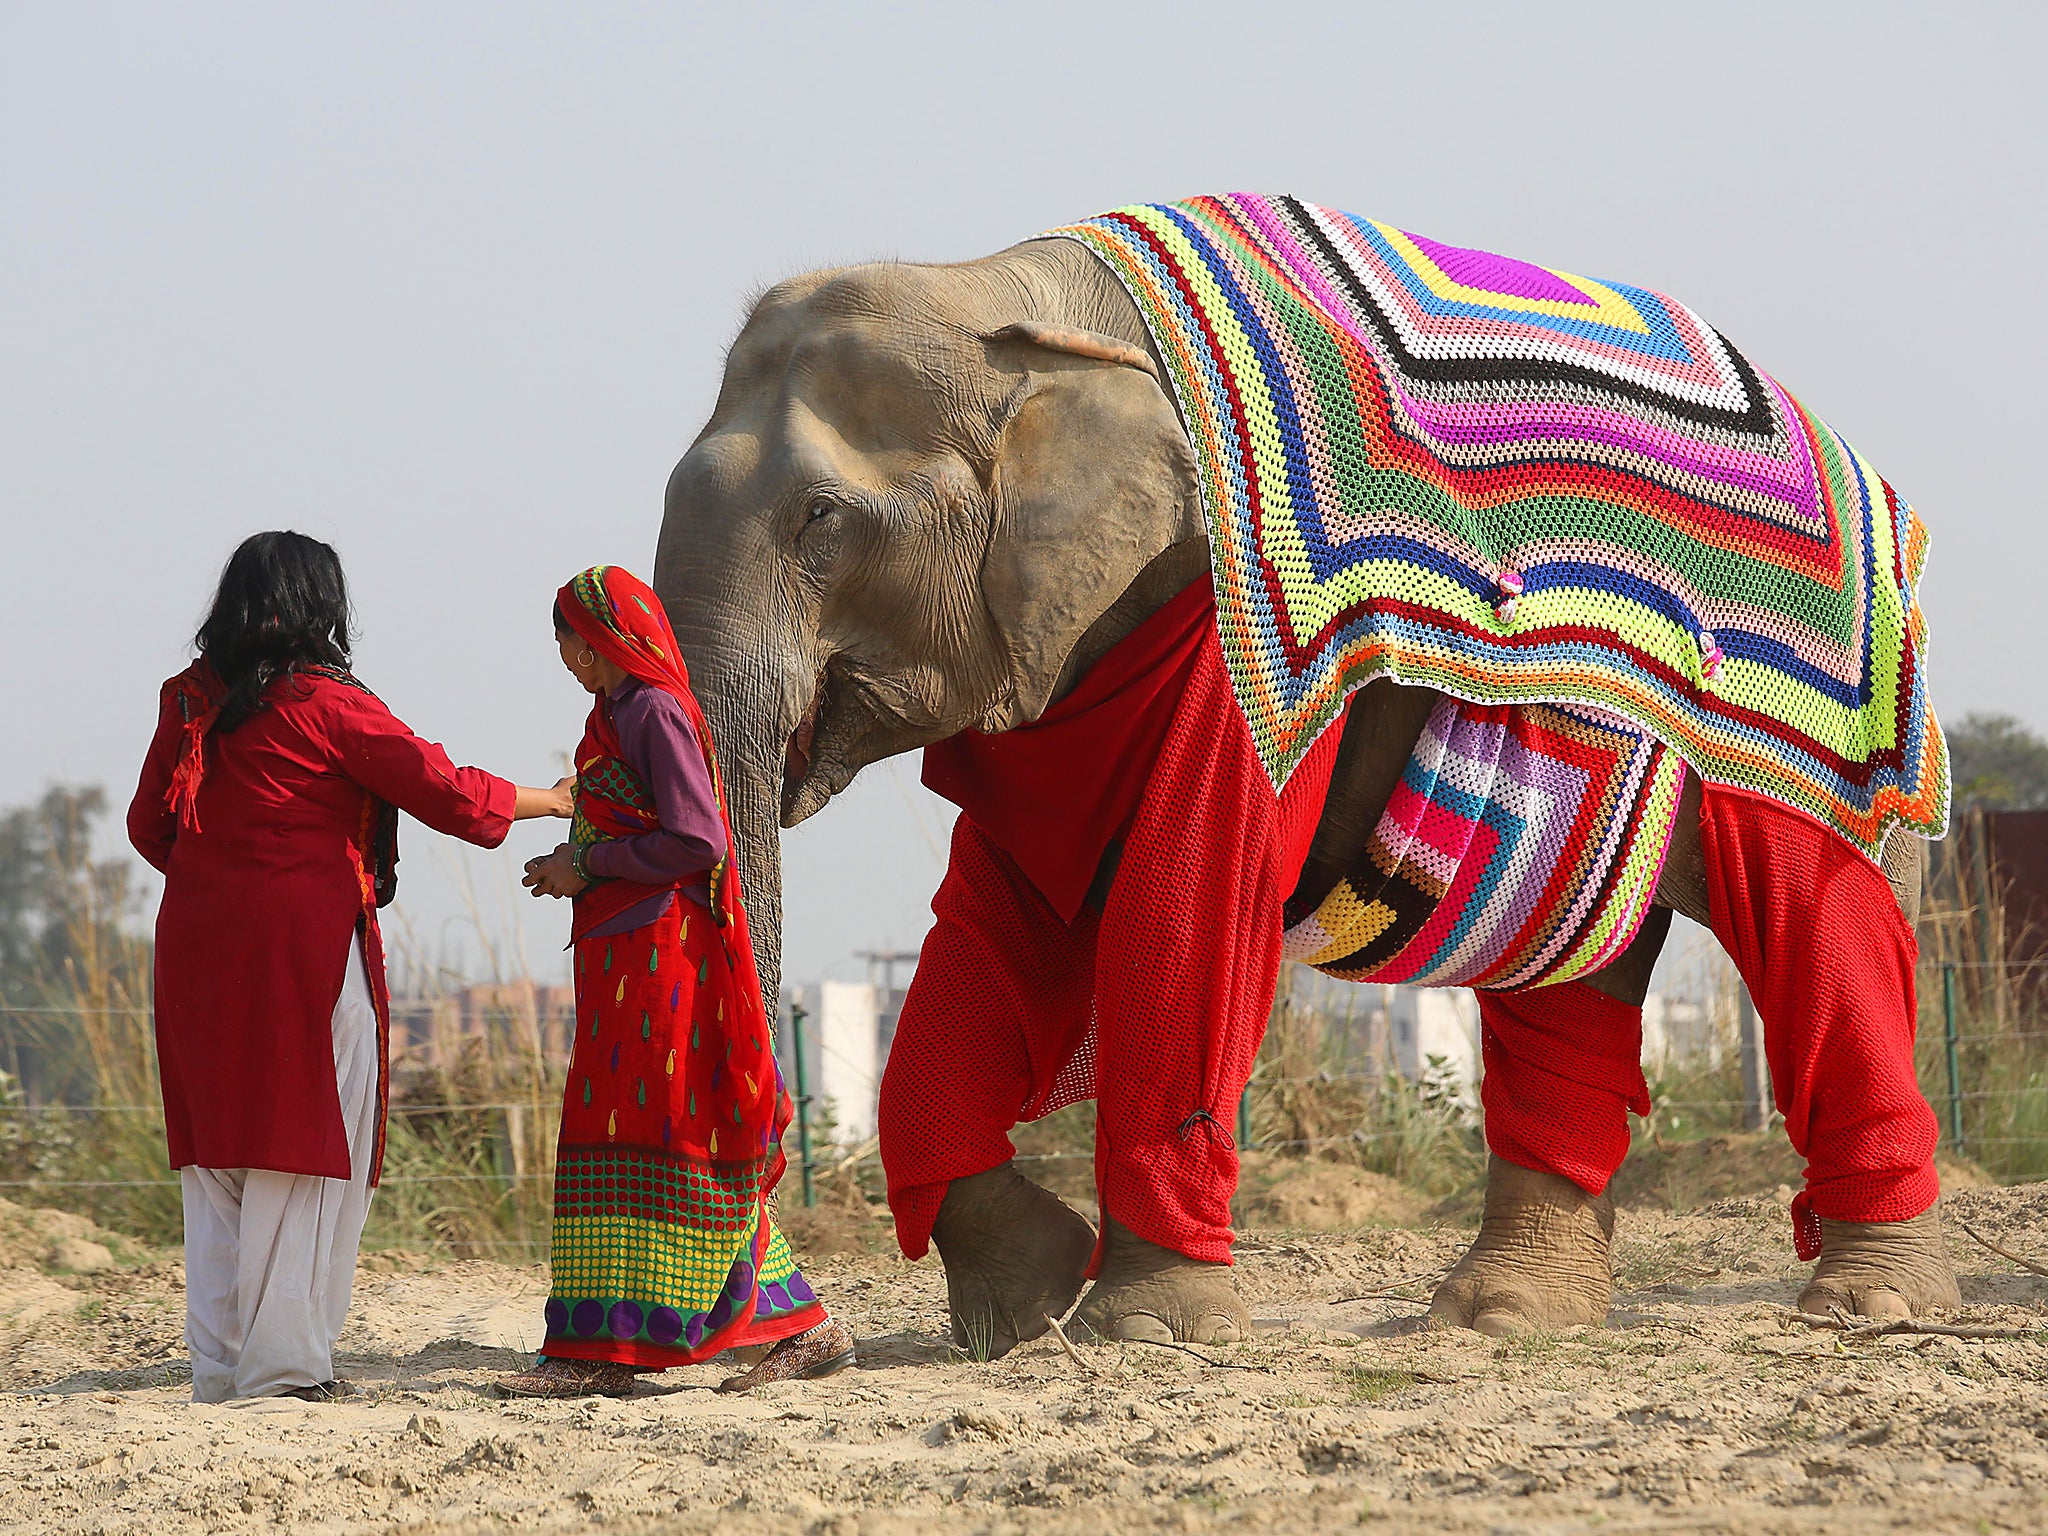 Villagers knit jumpers for Indian elephants to protect the